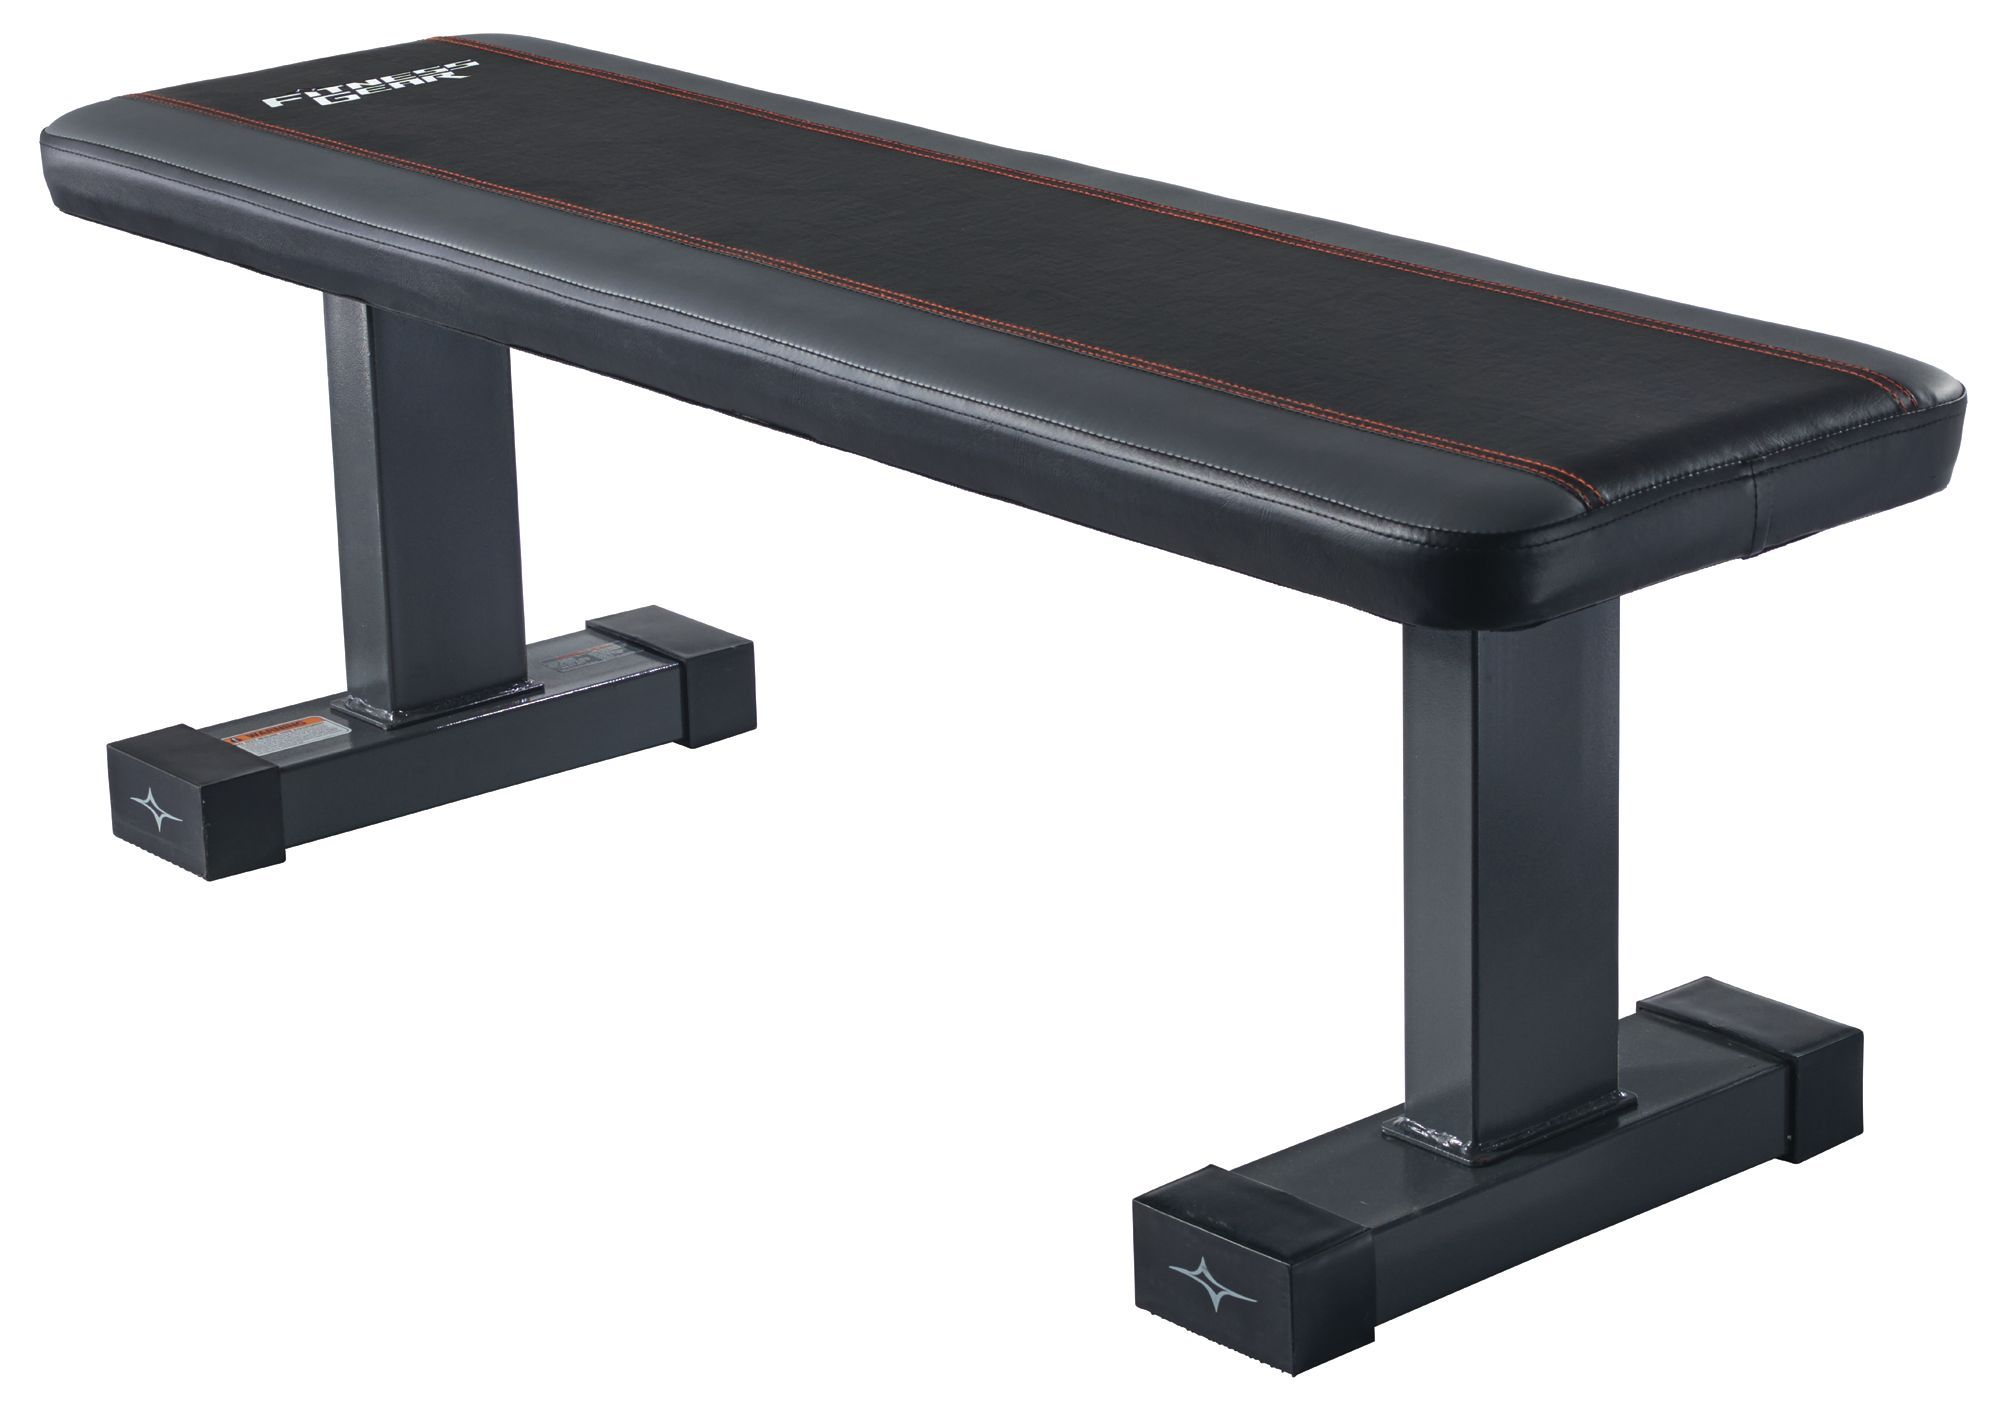 Fitness Gear Fixed Flat Weight Bench In 2020 Weight Benches Workout Room Home Workout Gear